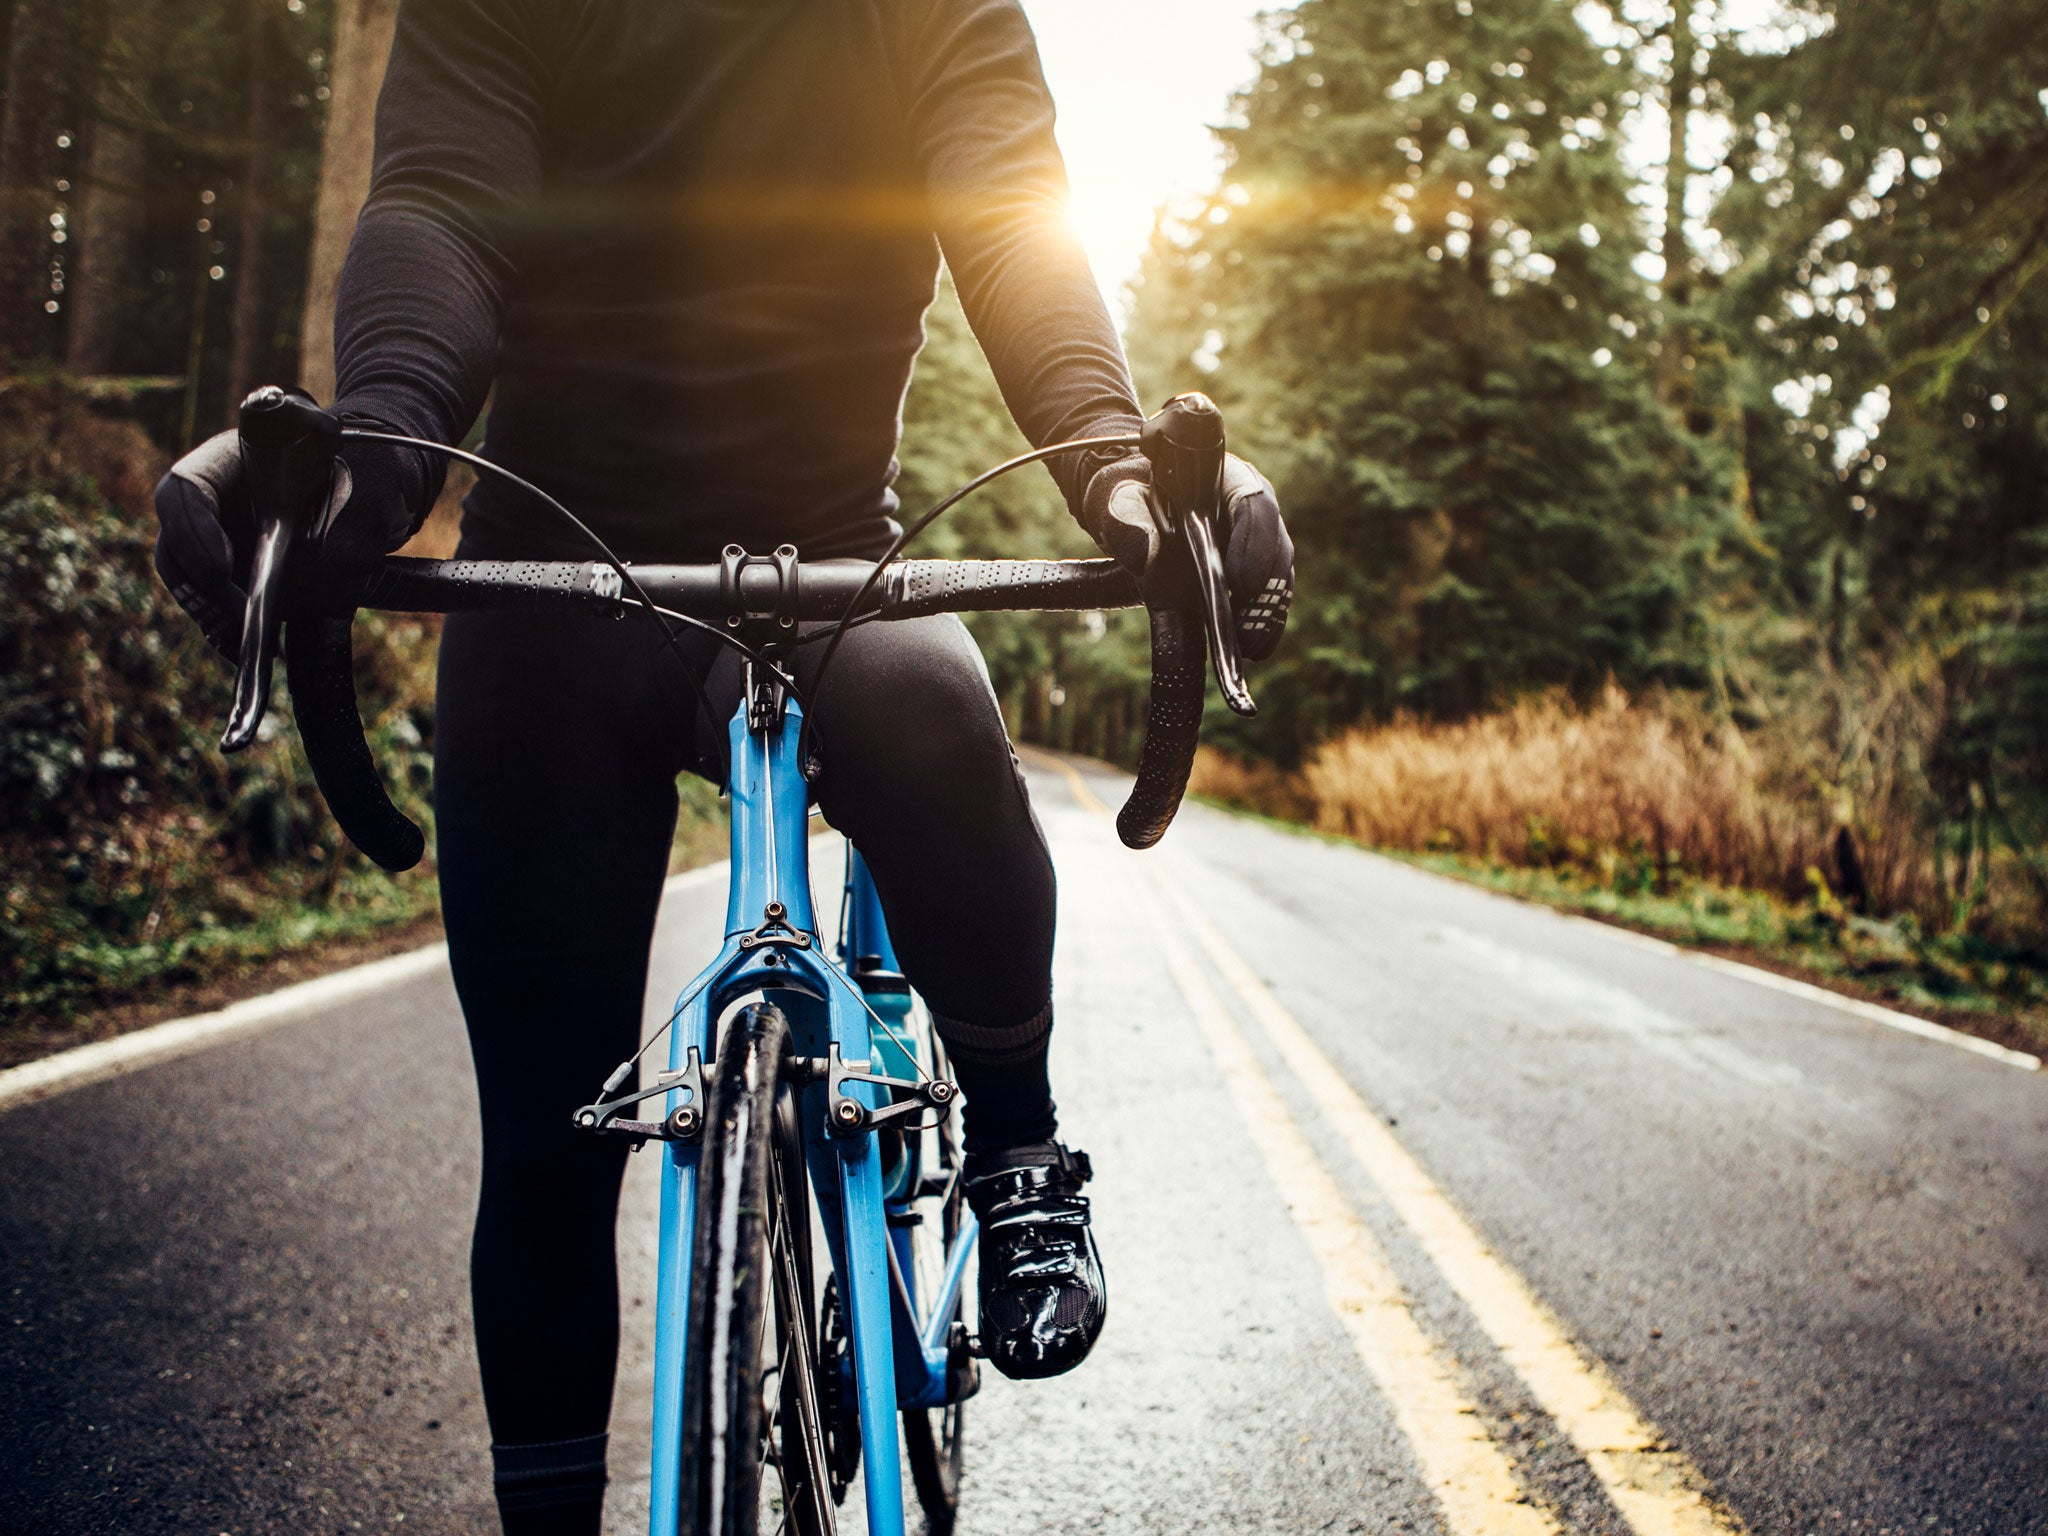 Cycling can keep you young in wide-ranging ways, study finds